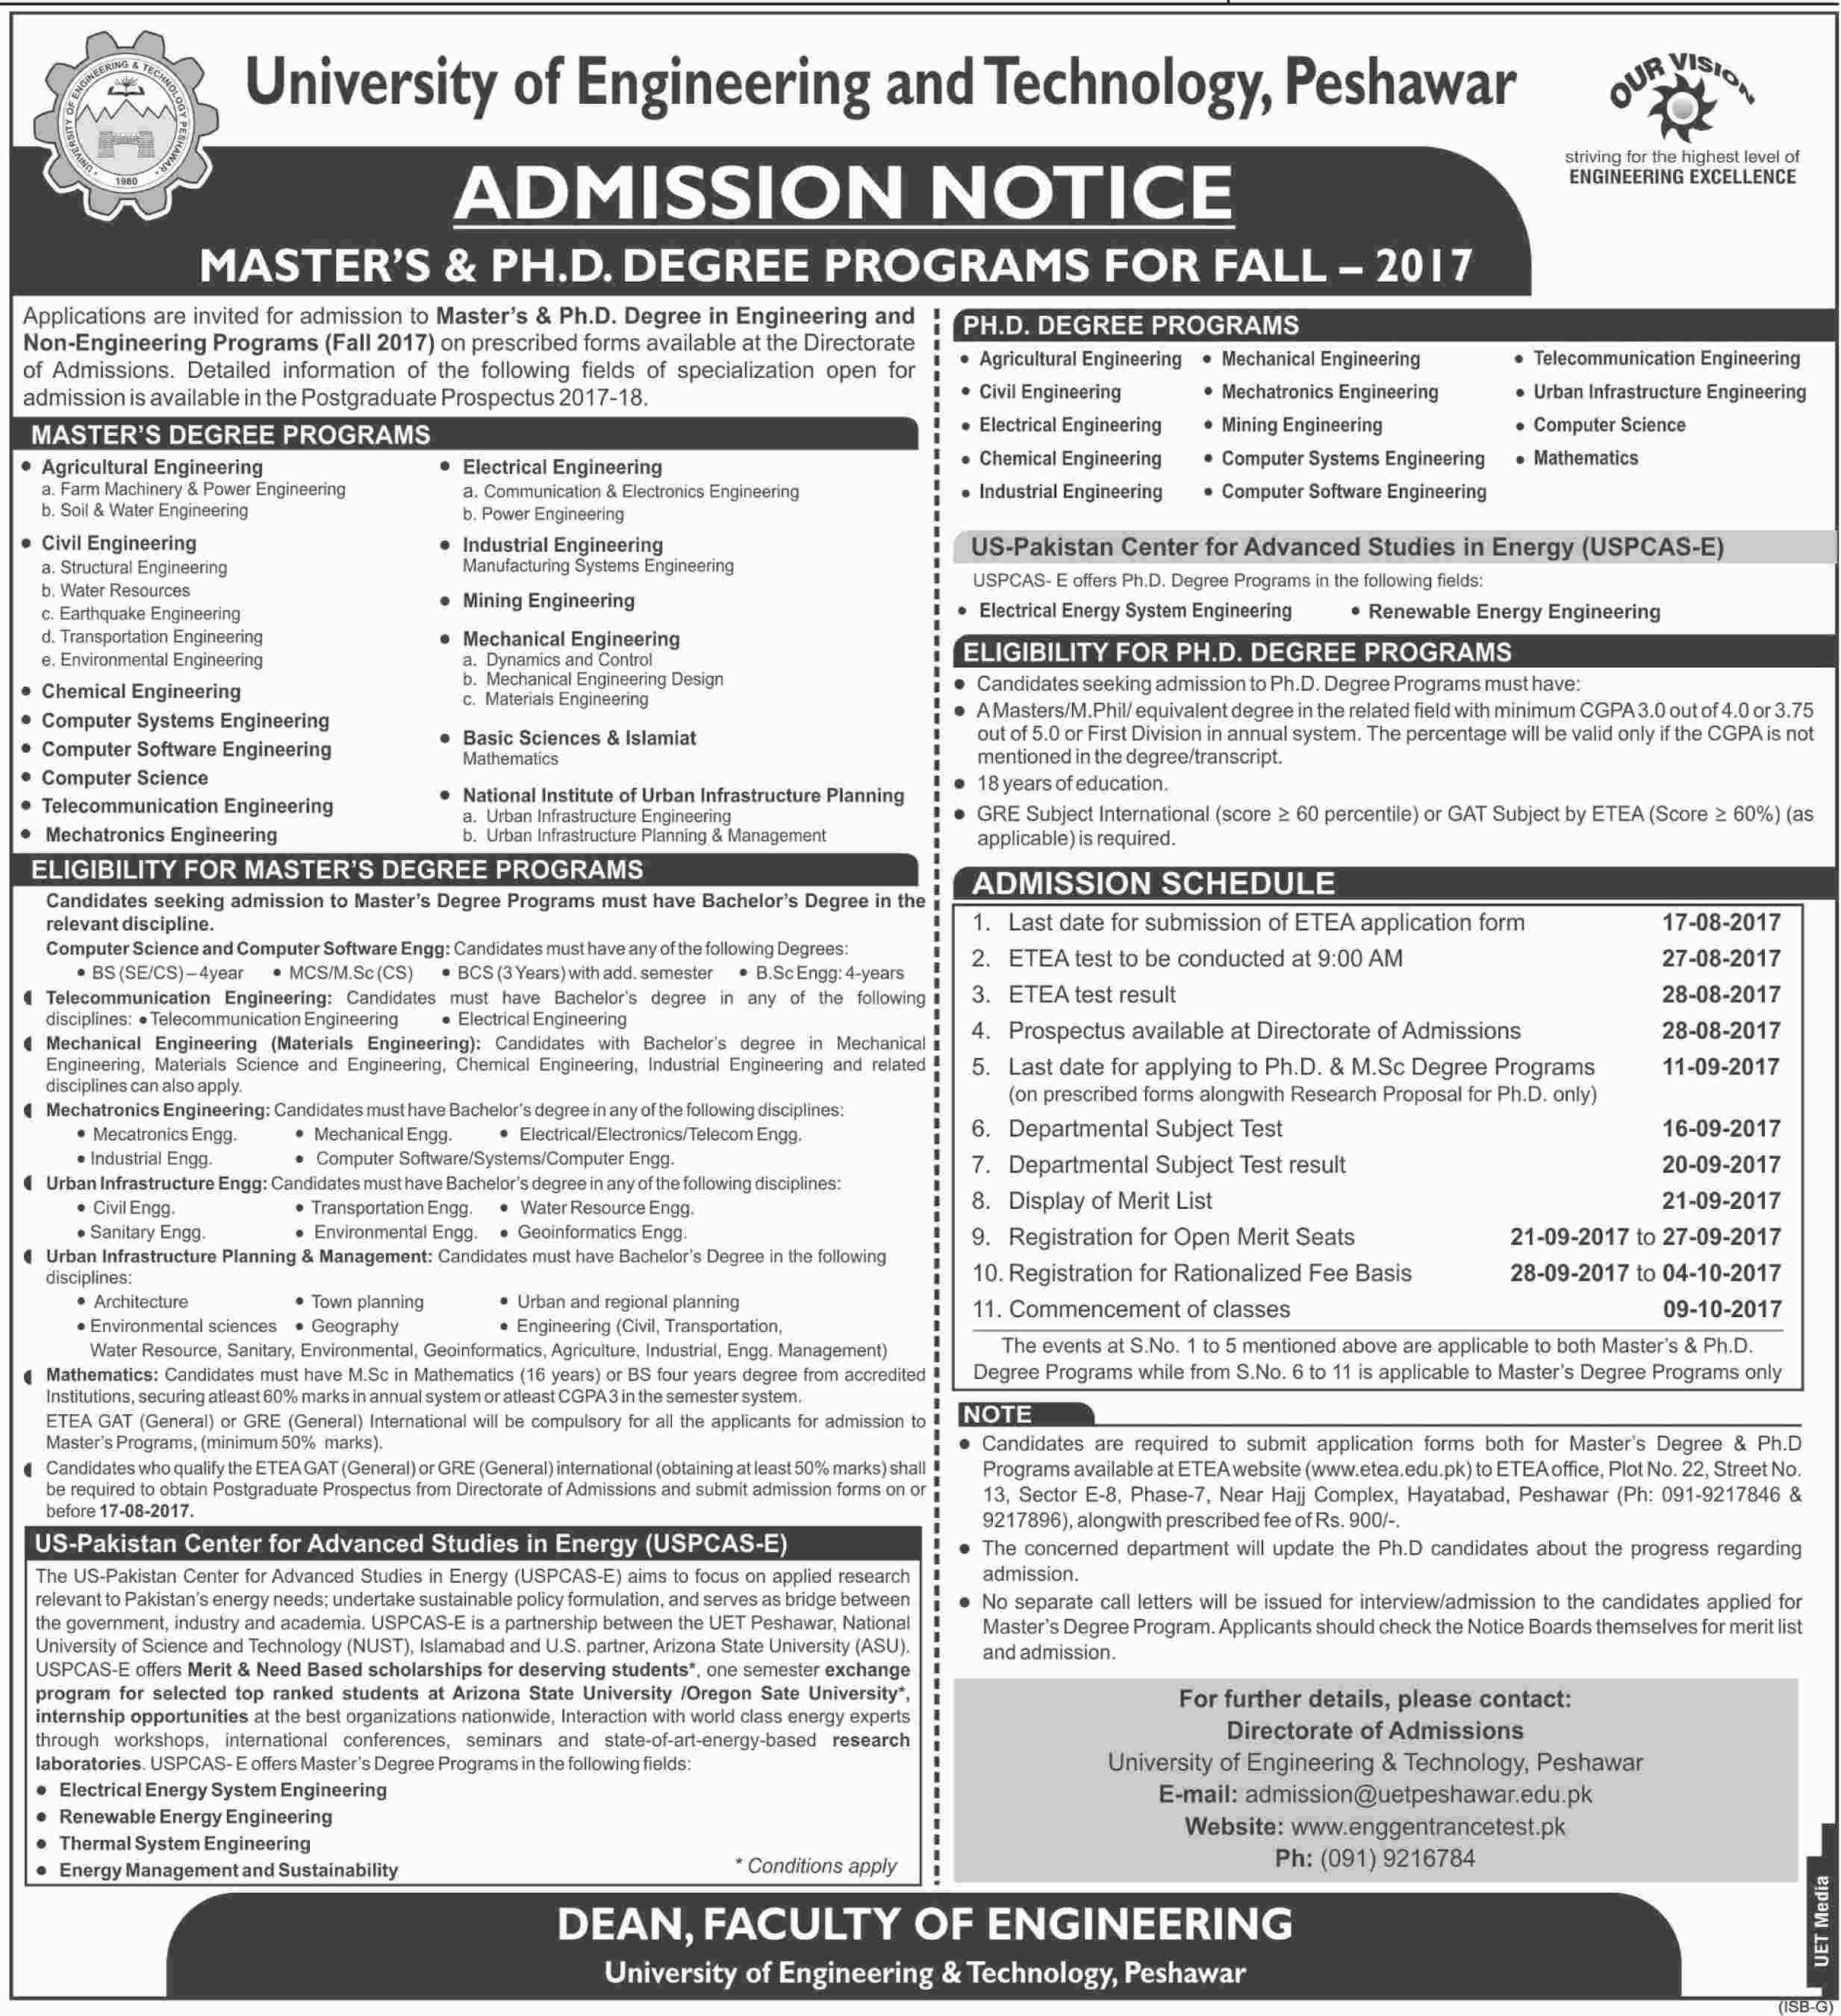 UET Peshawar Masters, PhD Admission 2017 Form, Entry Test Date